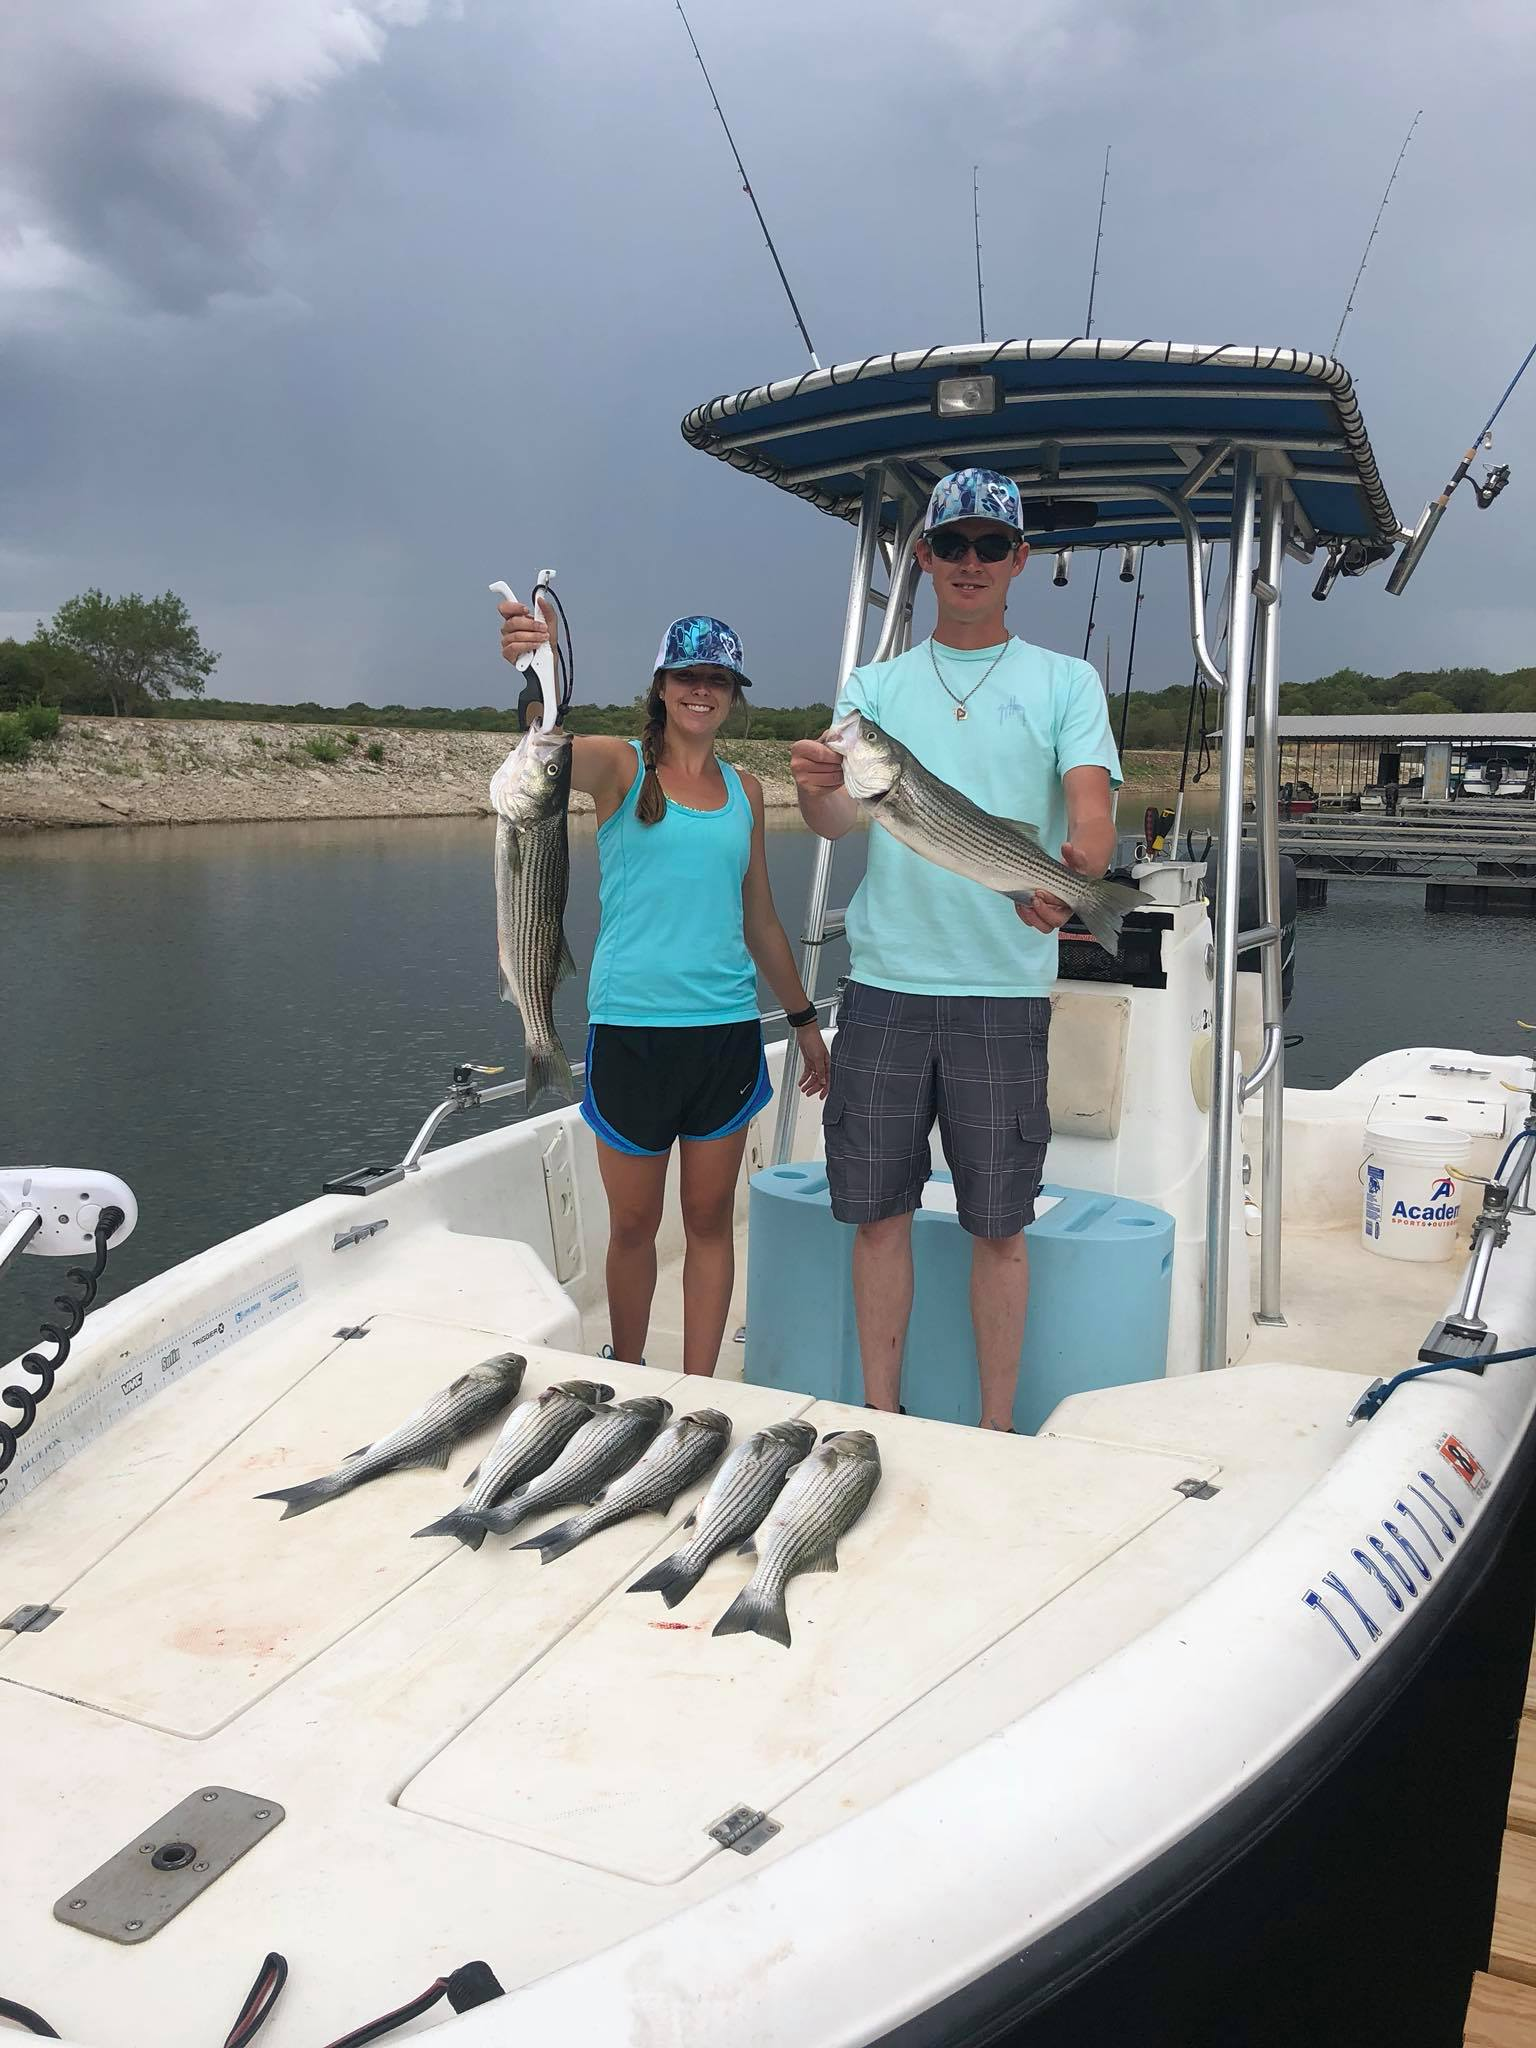 striper-fishing-on-lake-whitney-15648849961281263432